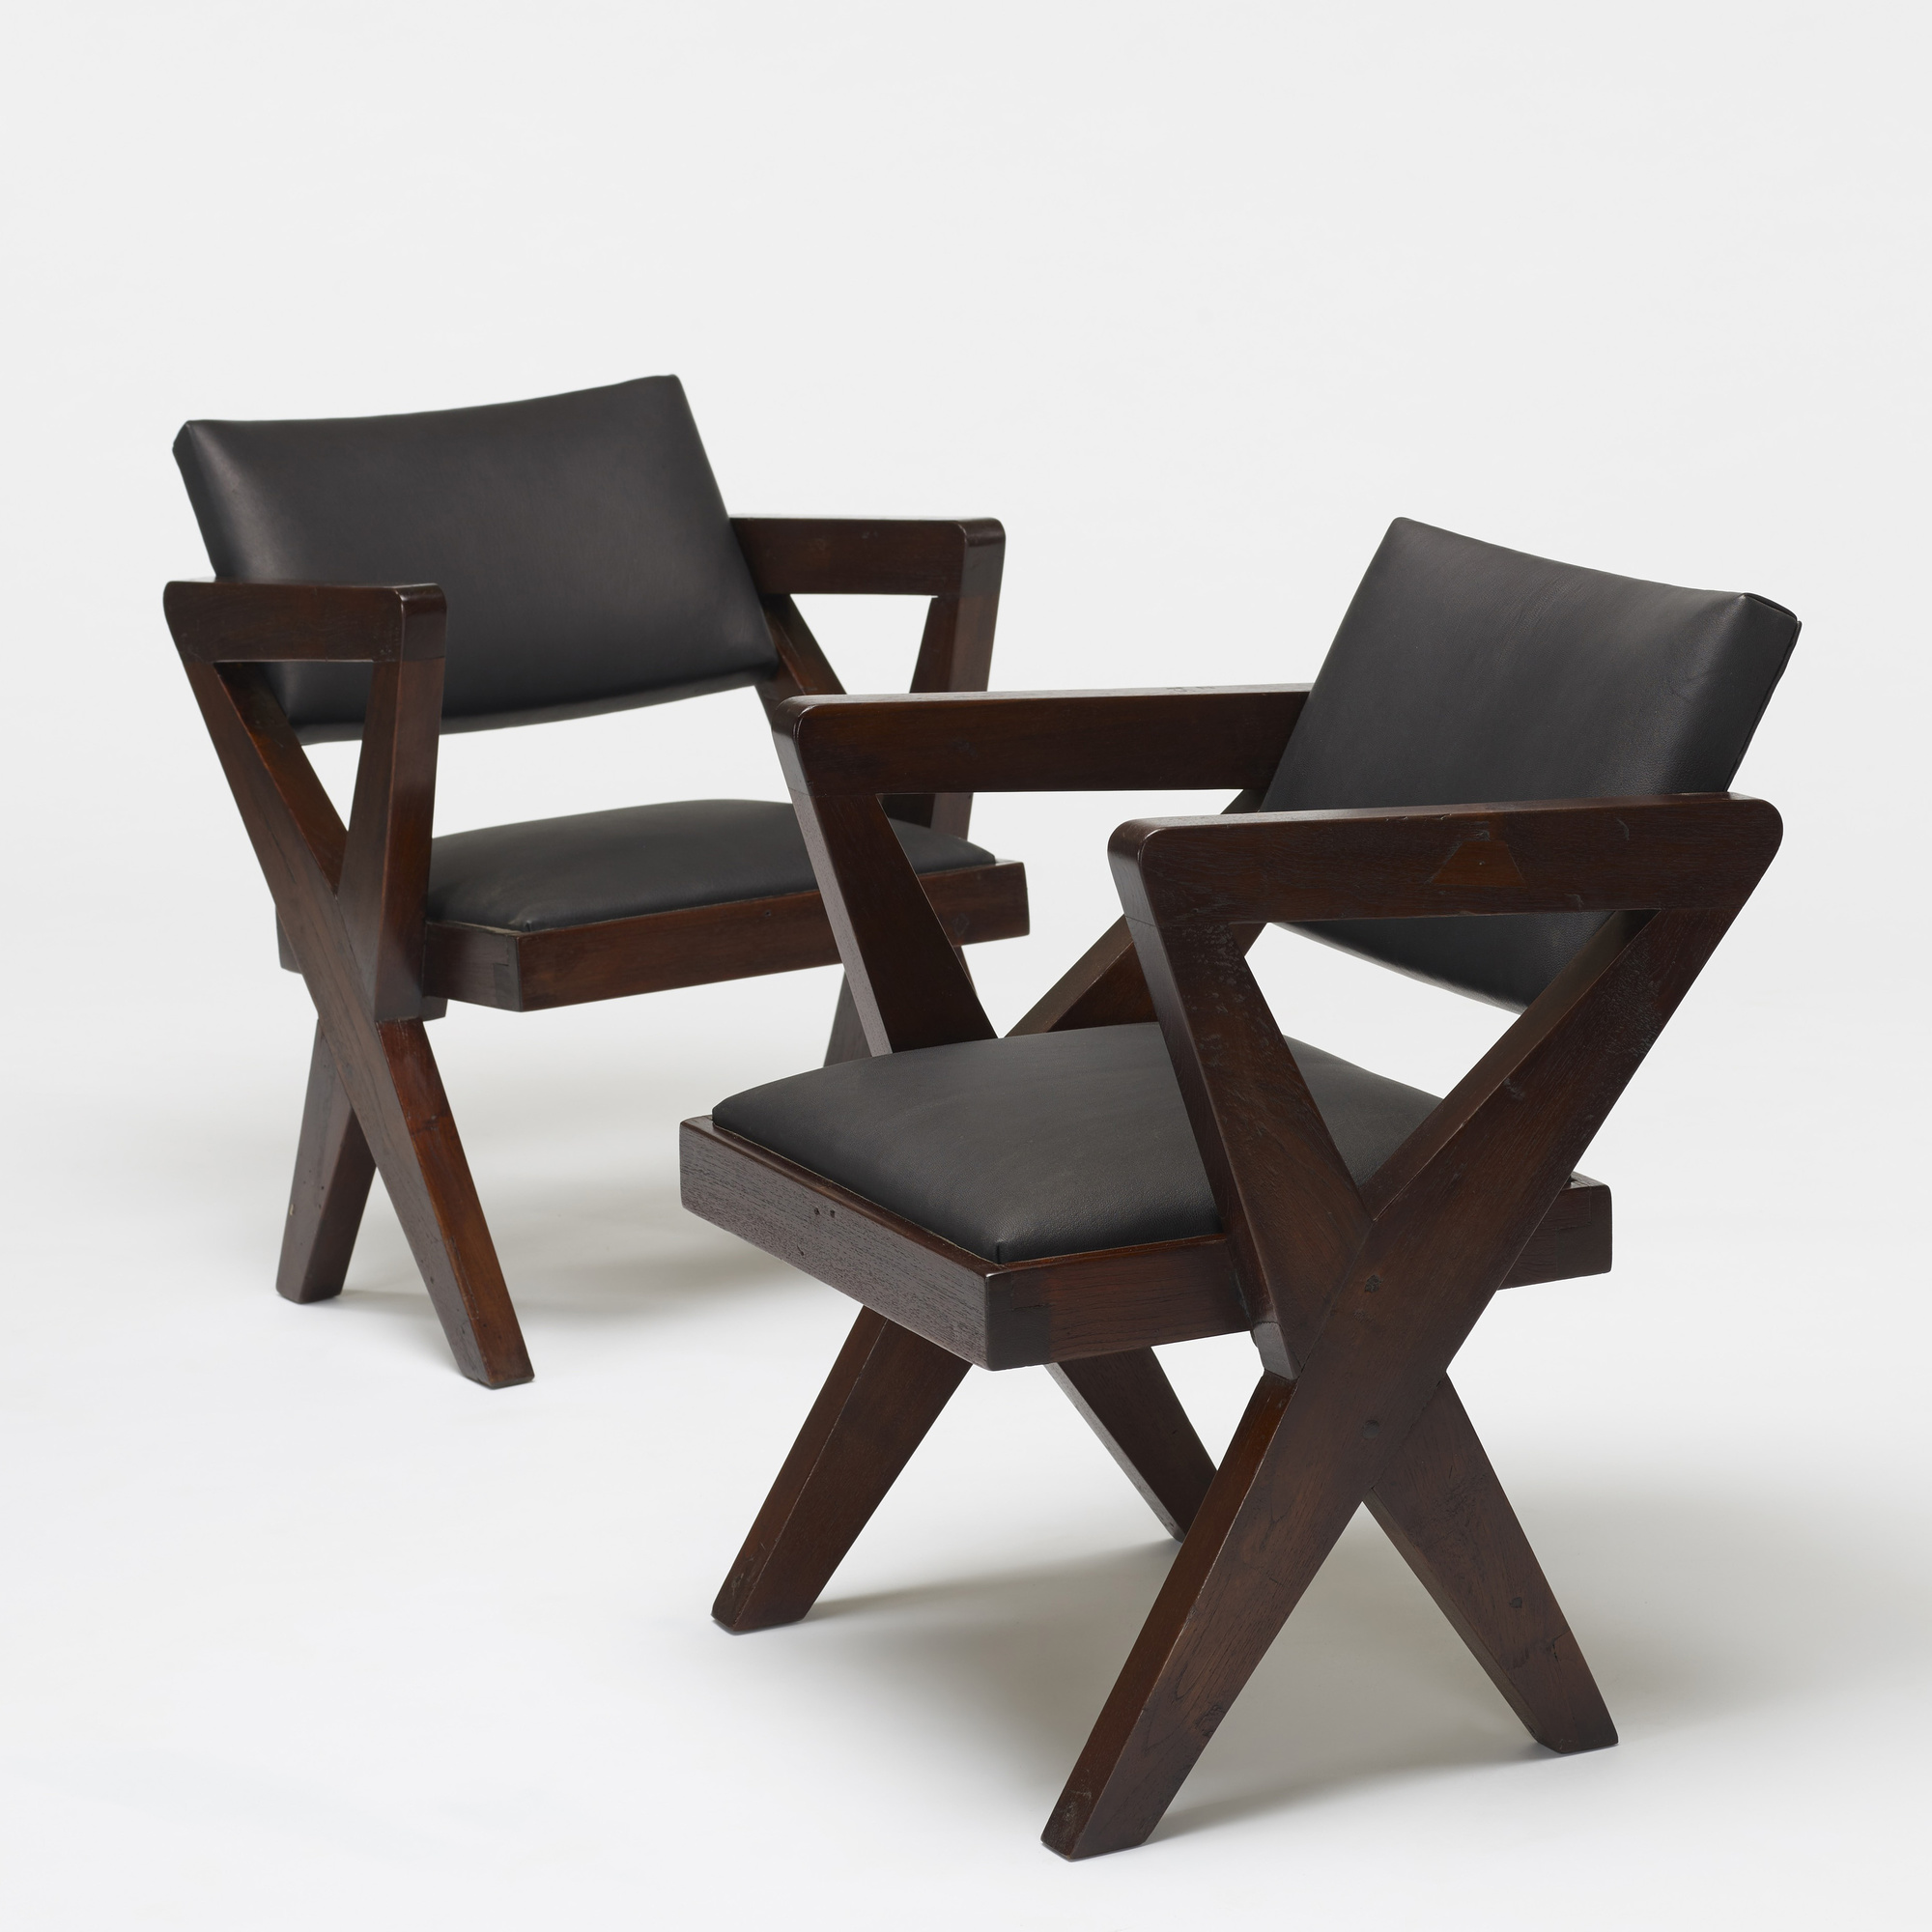 101: Pierre Jeanneret / pair of Showroom armchairs from the Tagore Theater, Chandigarh (3 of 4)